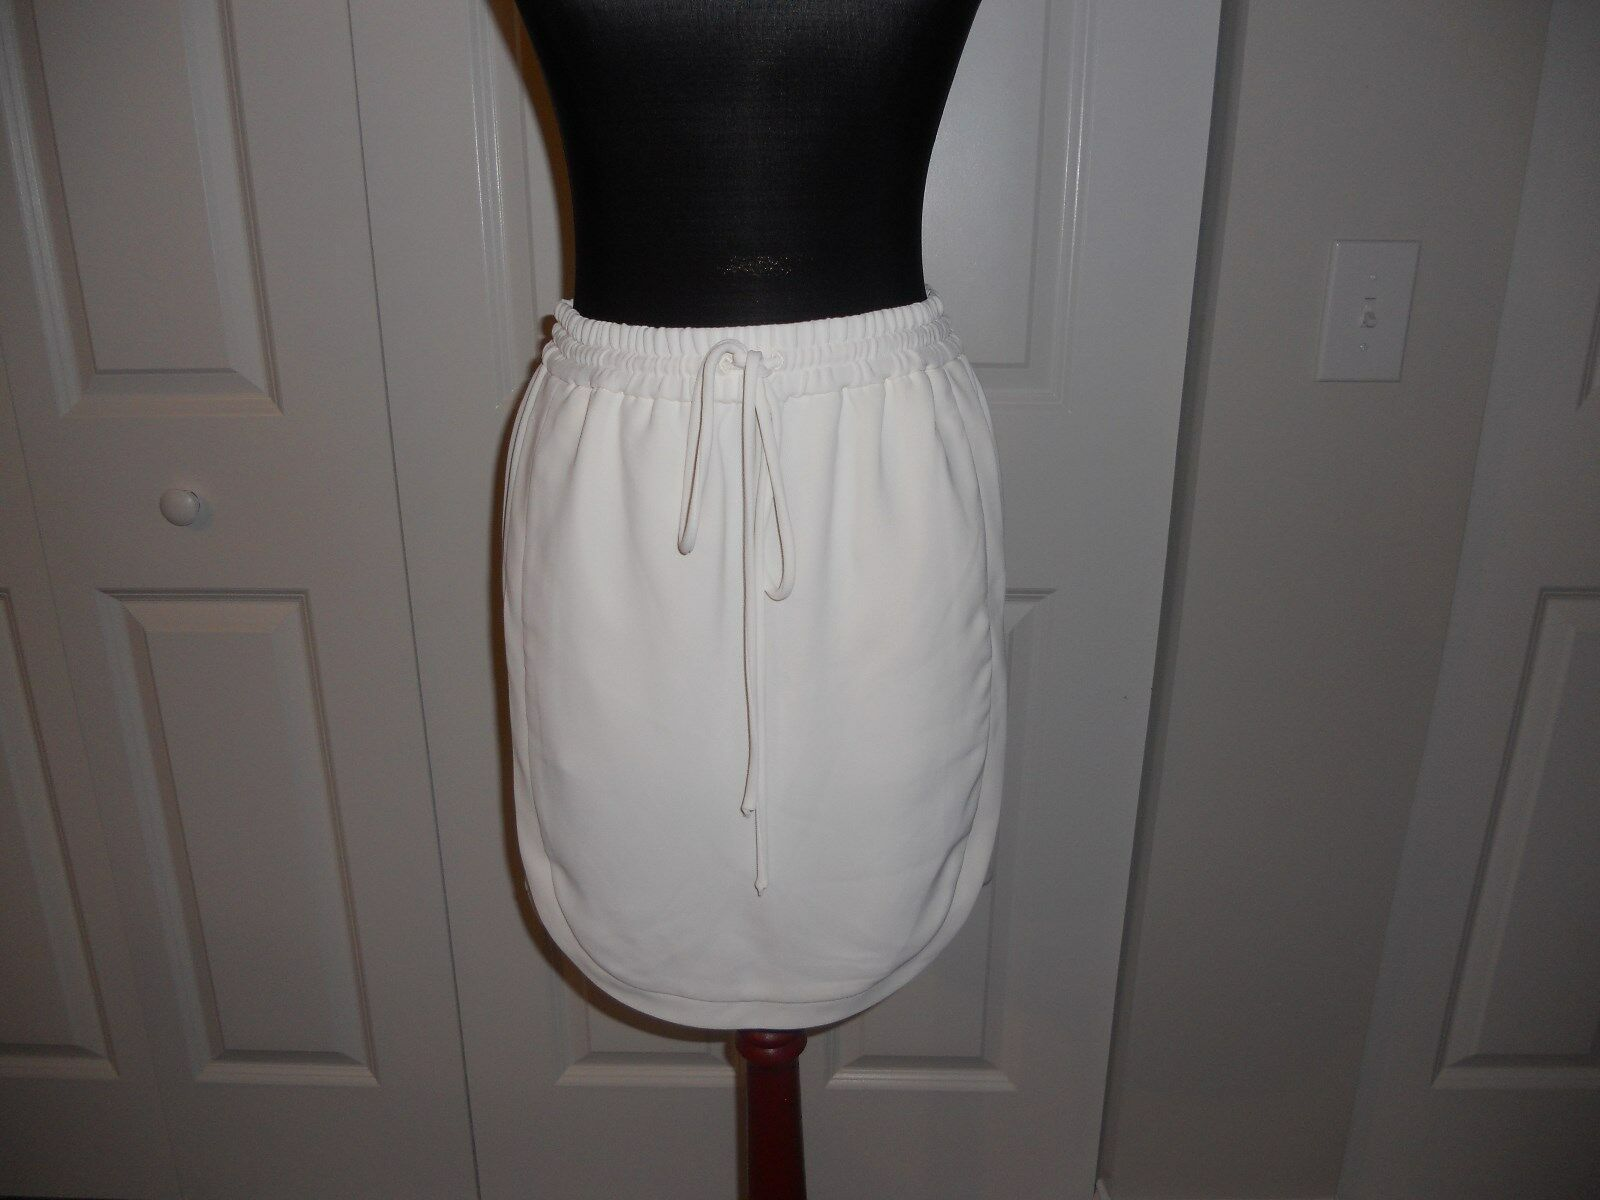 NWT J CREW DRAPEY DOUBLE TWILL SKIRT IN IVORY SIZE 00